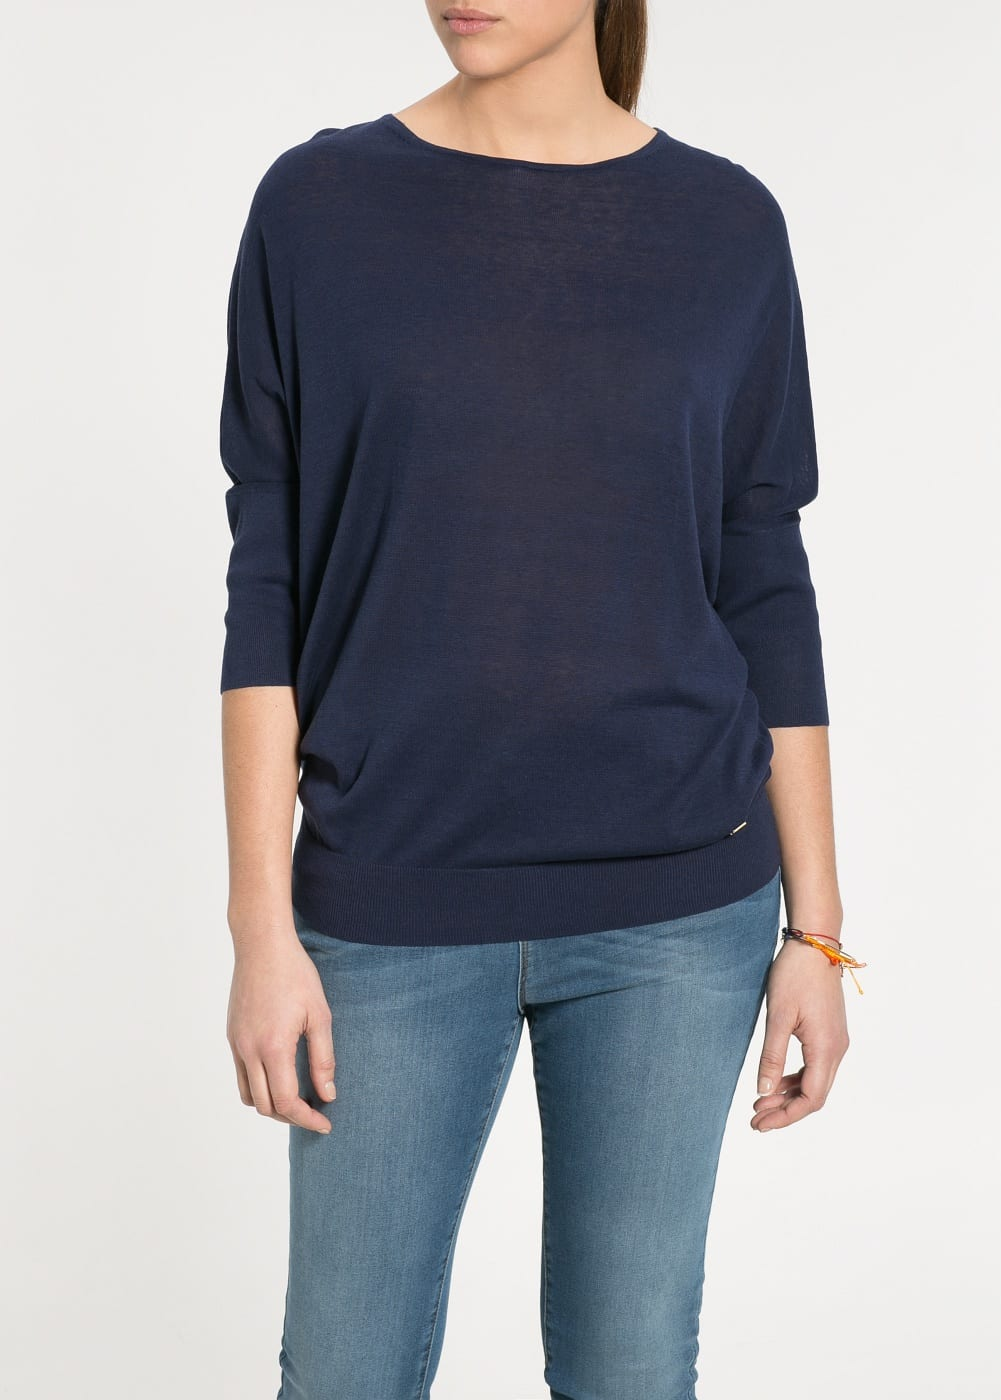 Pull-over coton soie